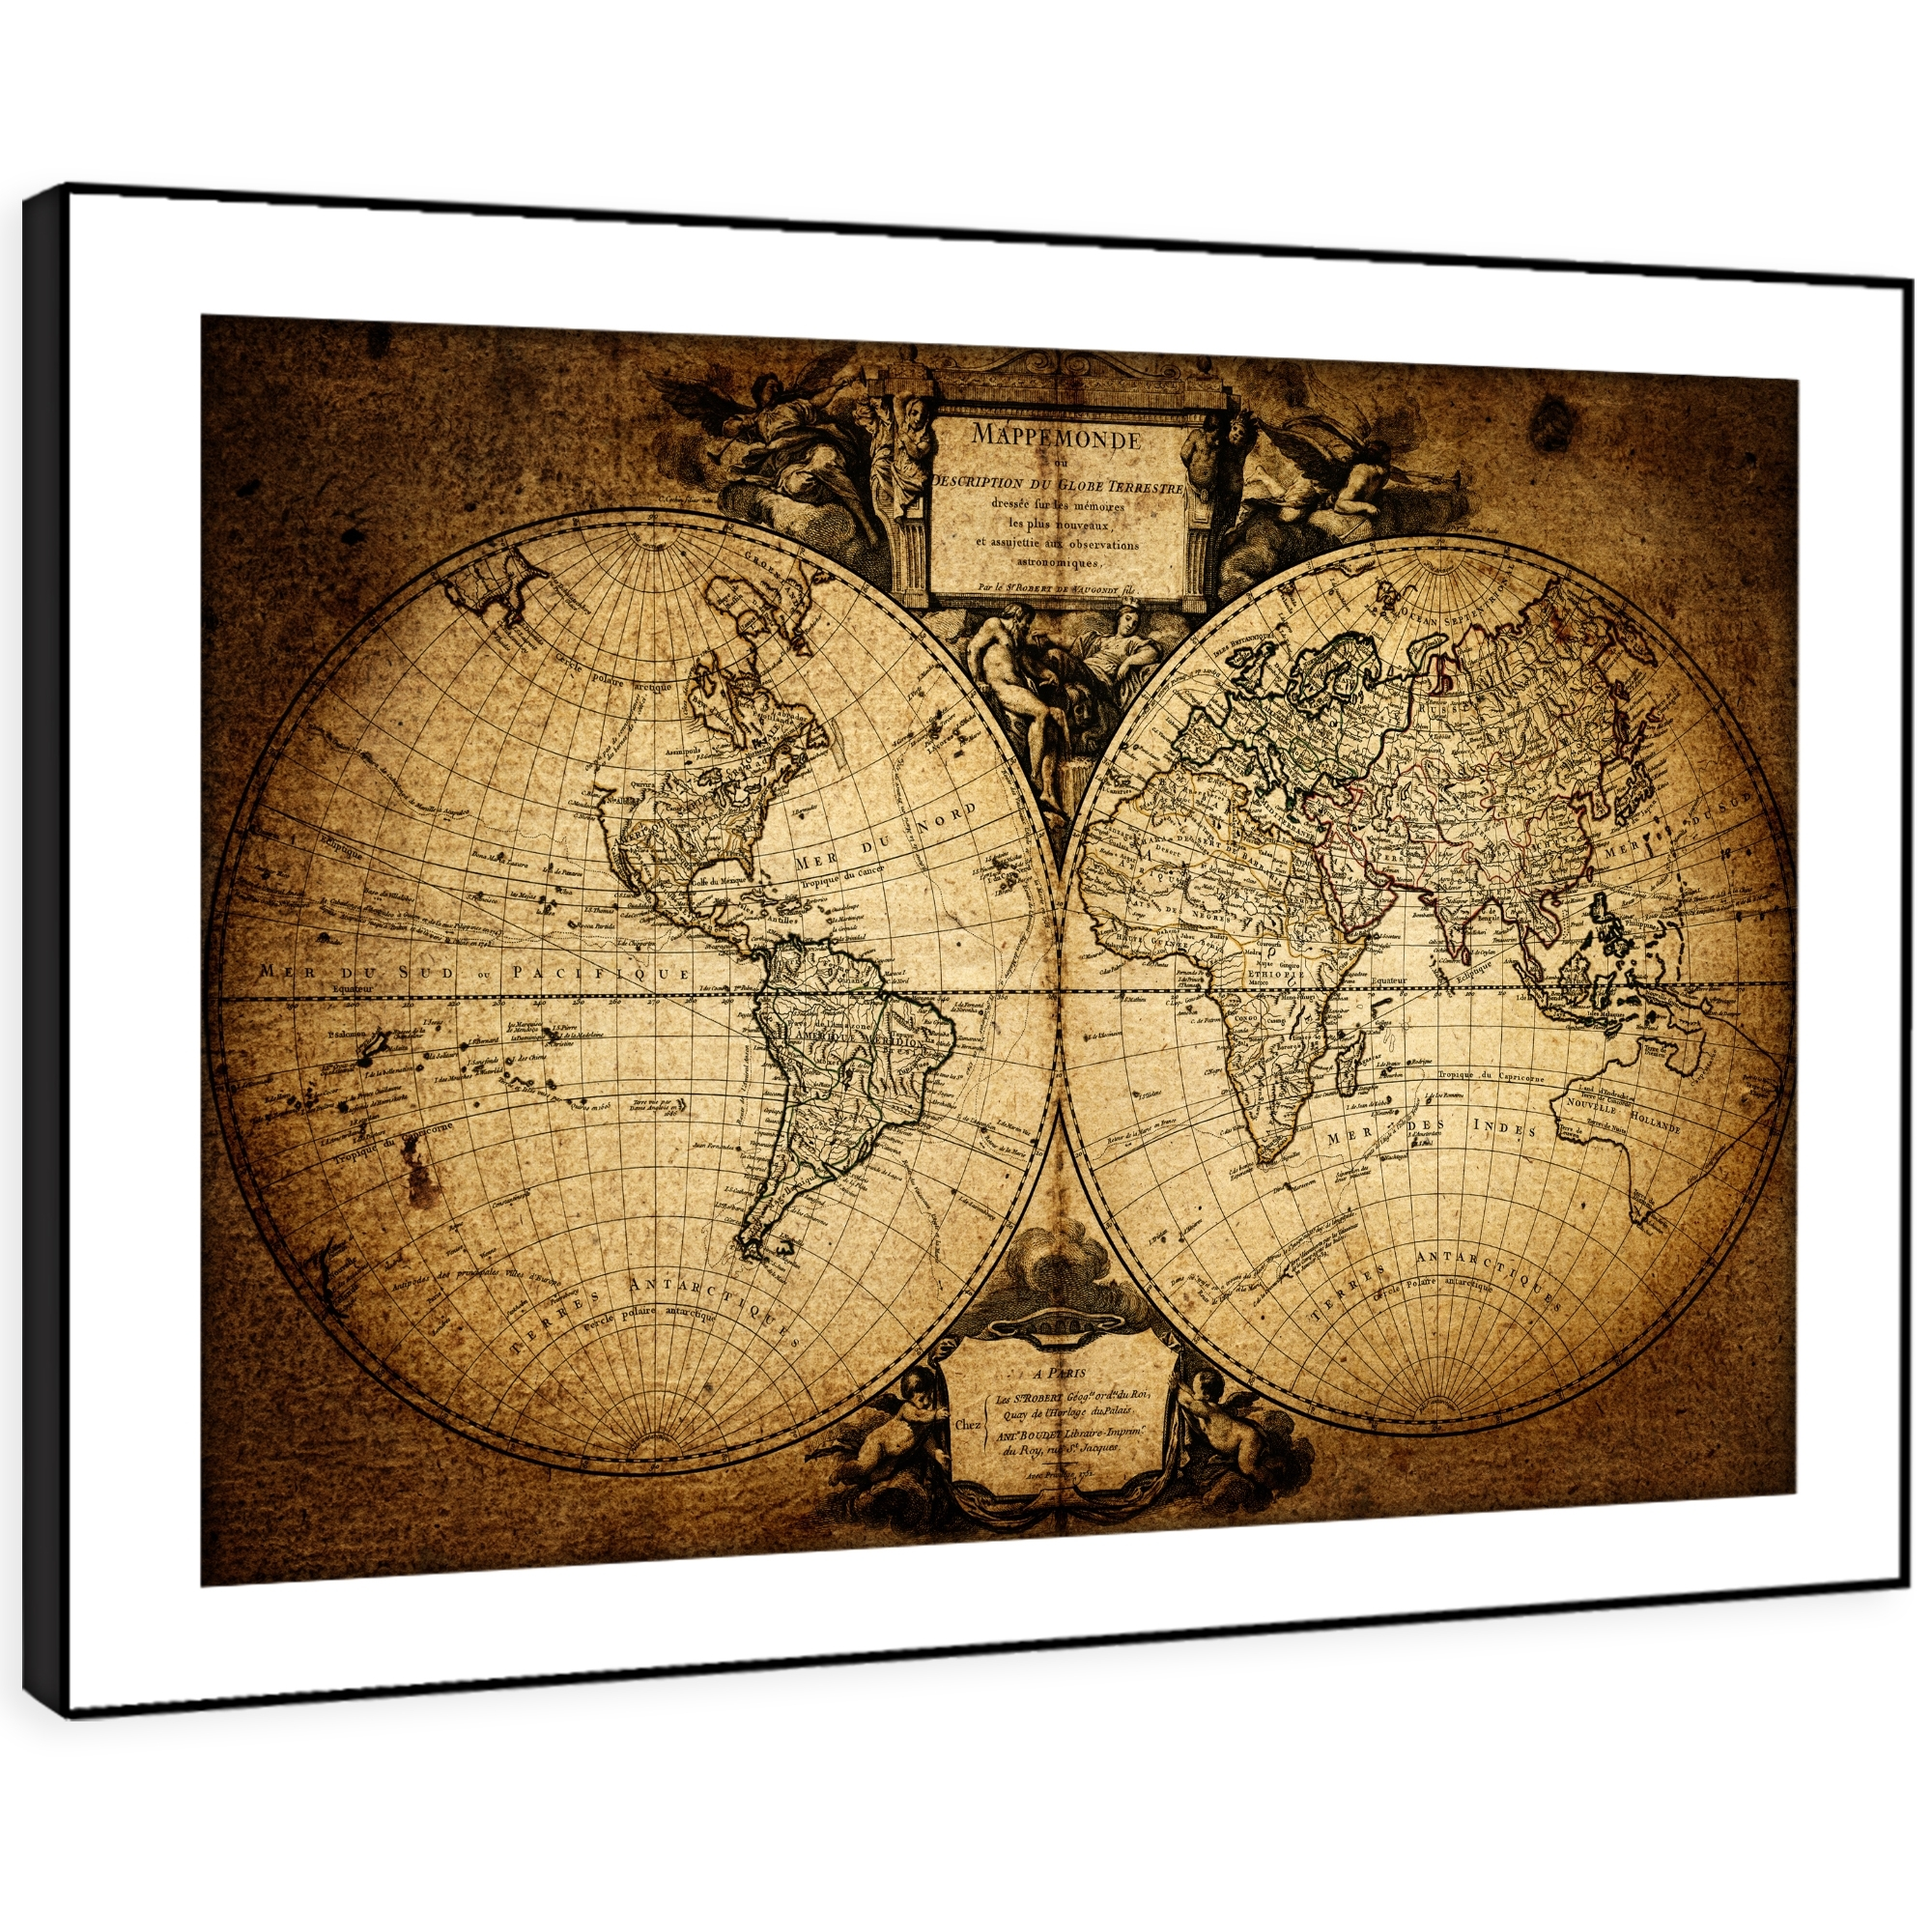 Sc359 Retro Vintage World Map Landscape Framed Wall Art Large With Regard To Best And Newest Framed Wall Art (View 13 of 15)